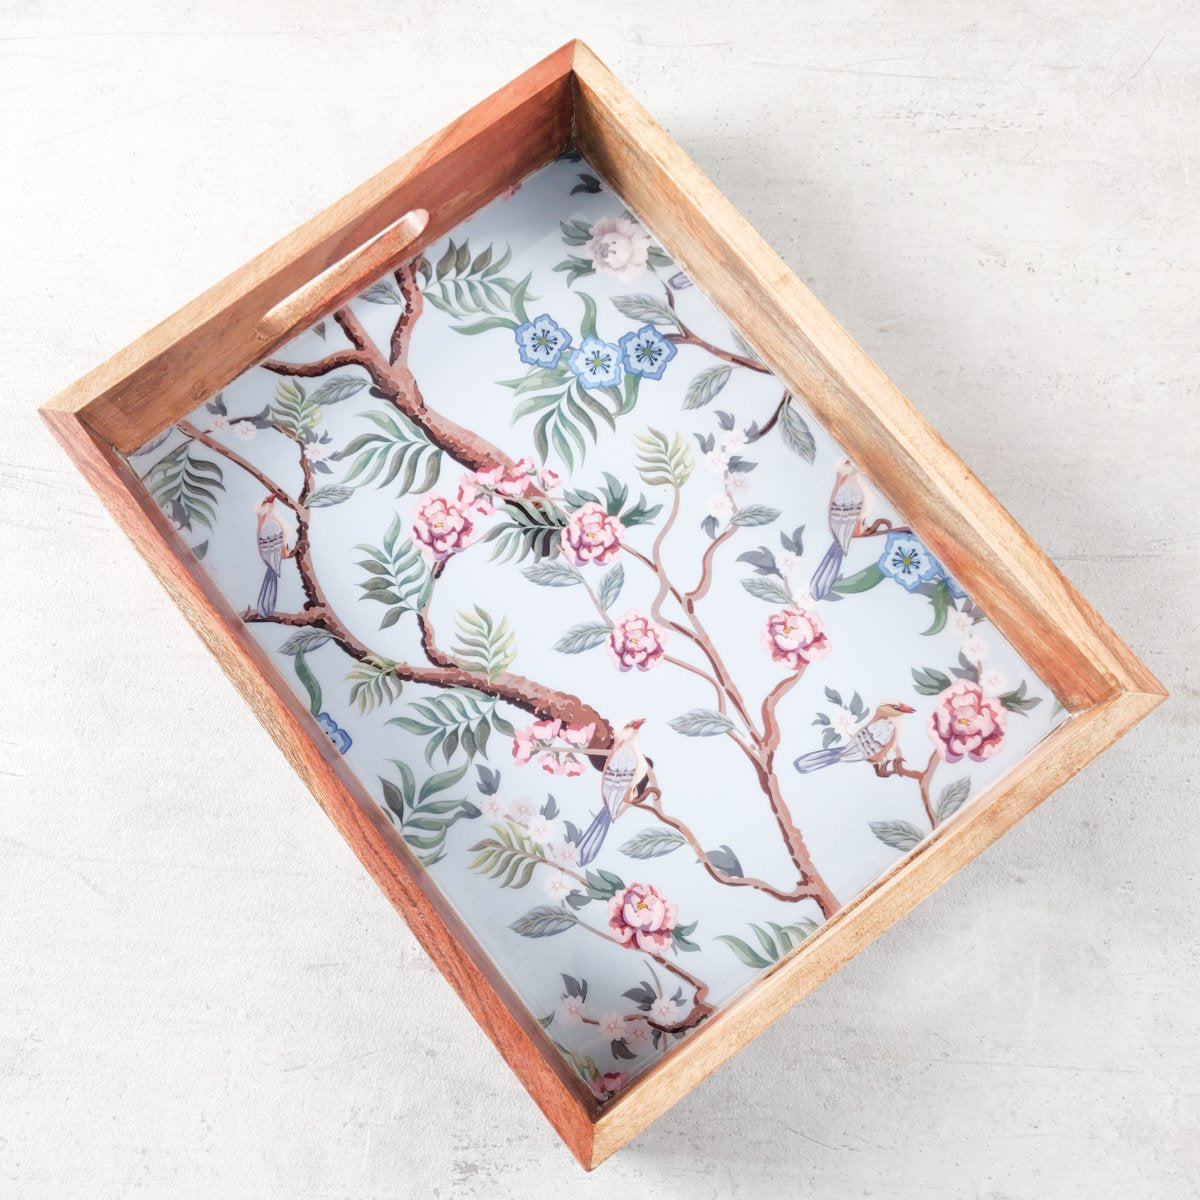 Kowloon Park Mango Wood Tray - Home Artisan